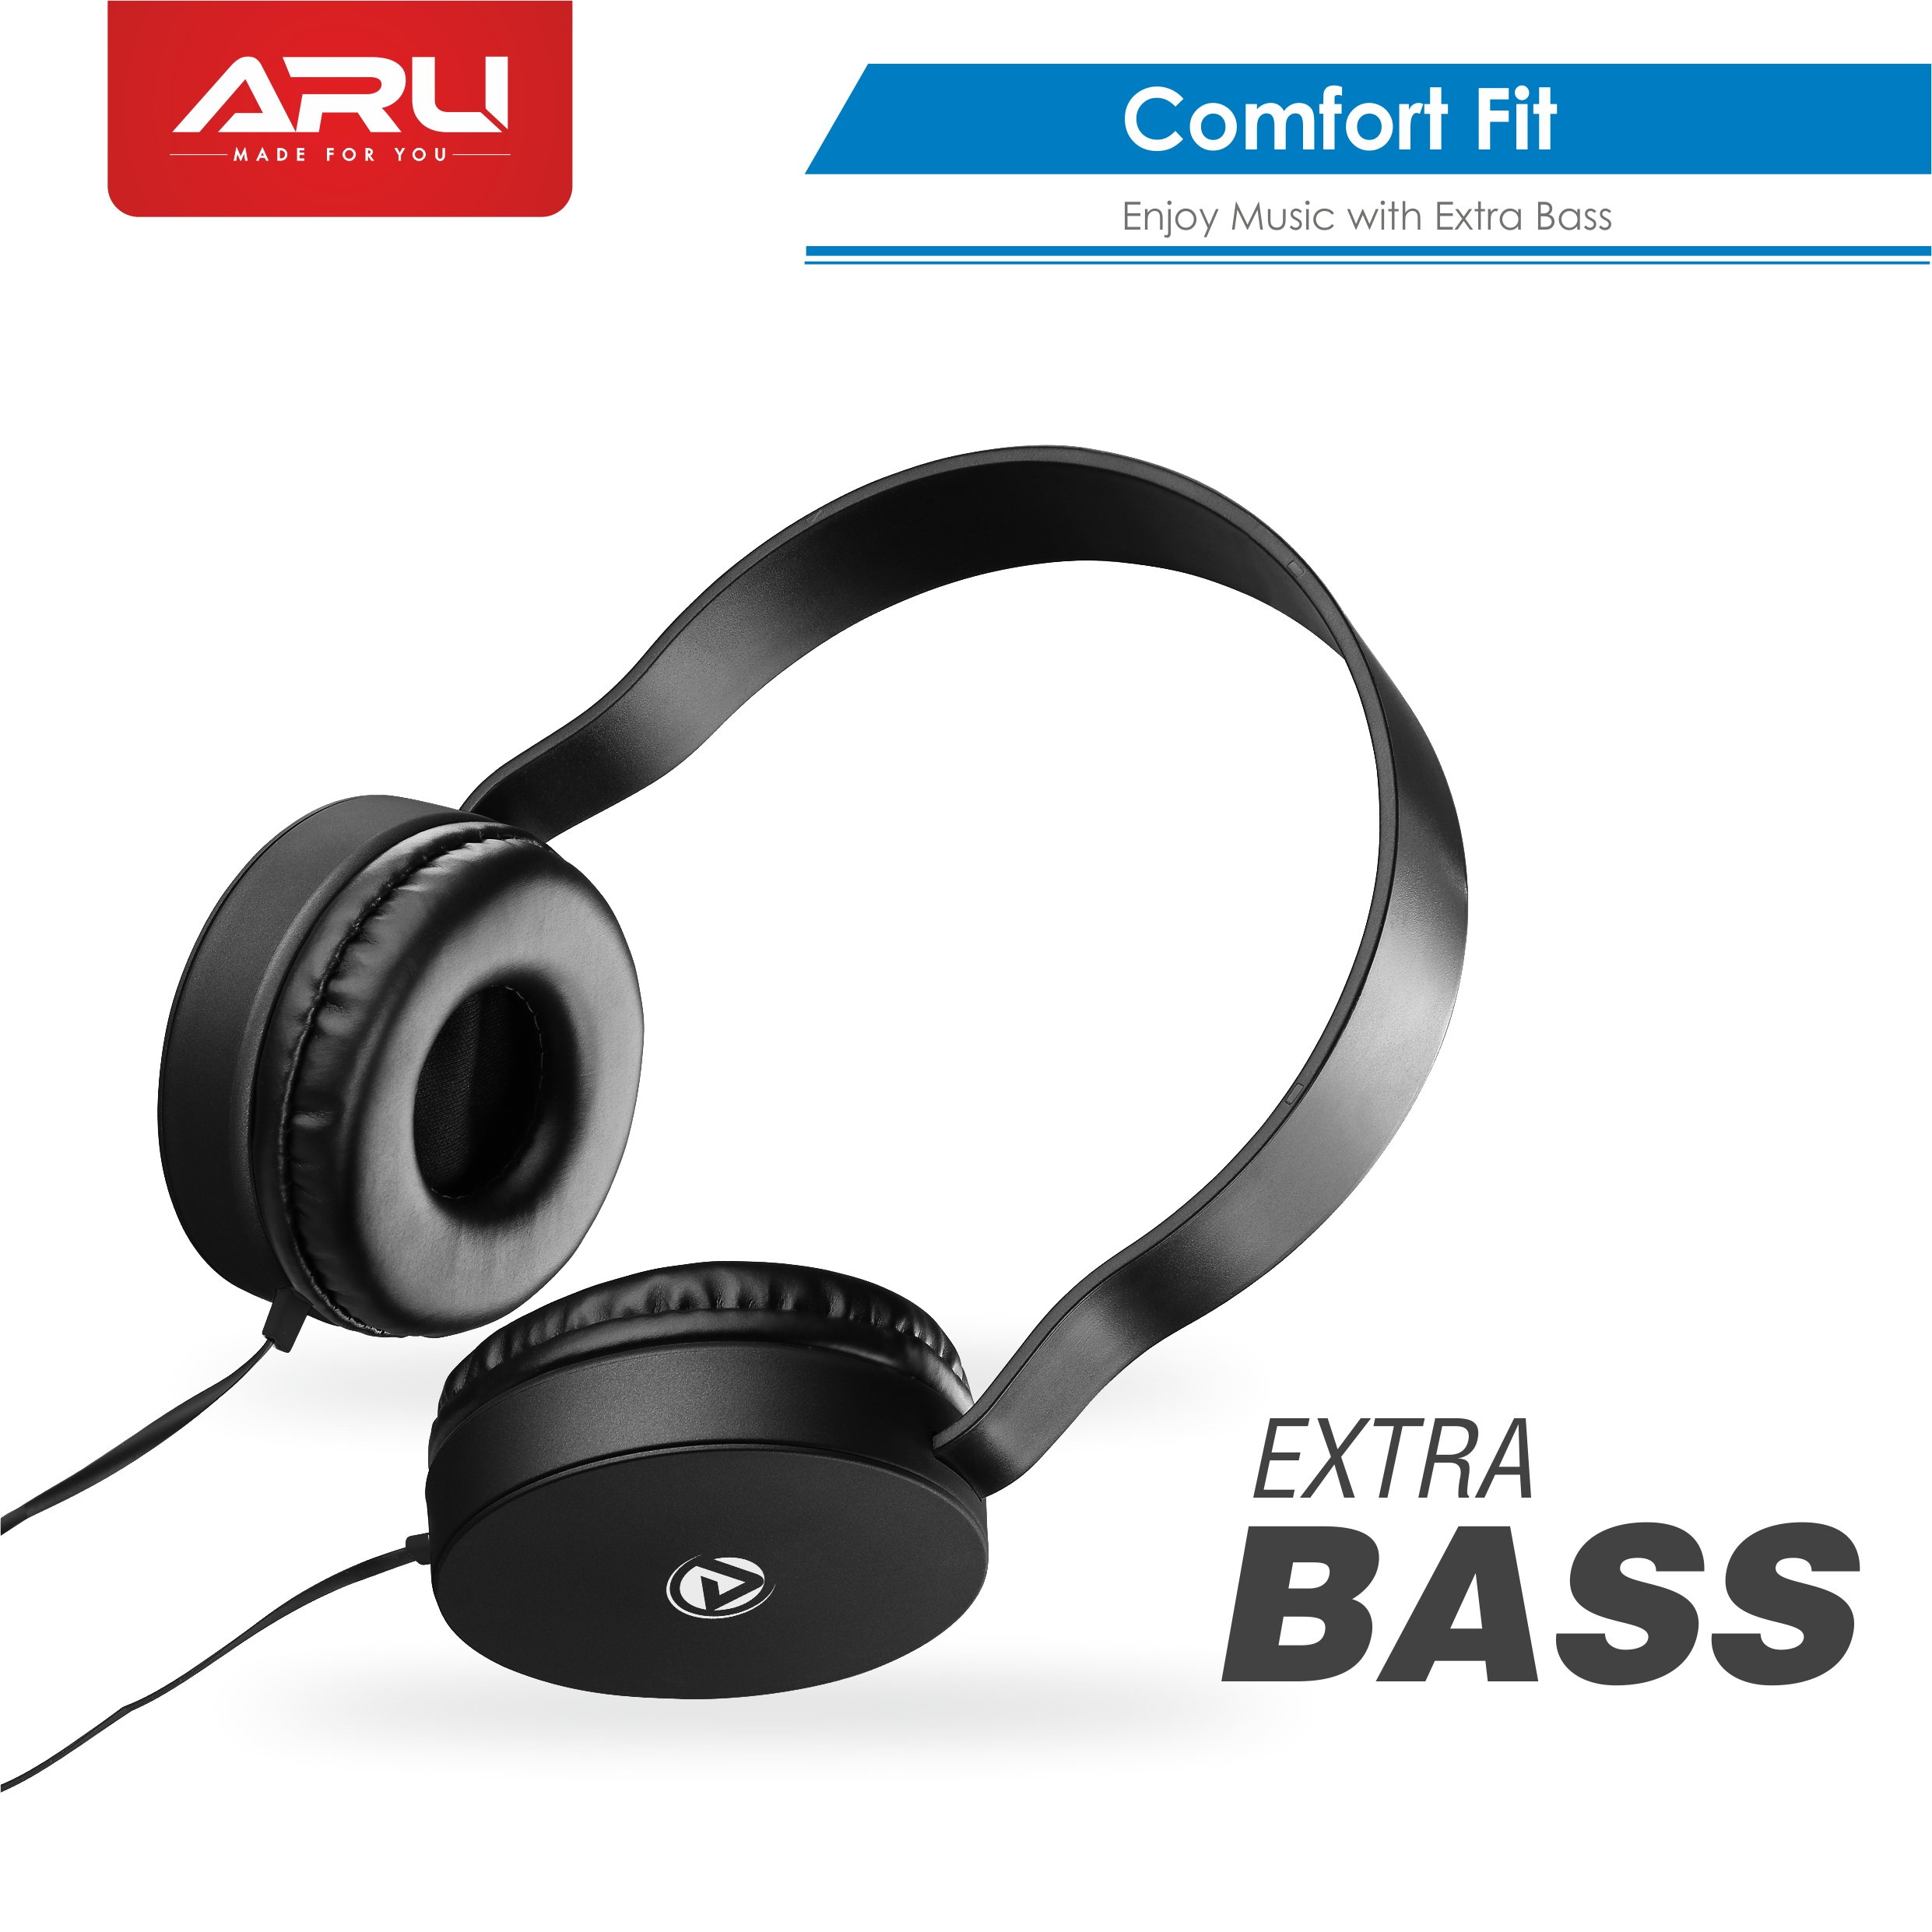 ARU AWH-92 Wired Headphone with Mic - Black - Black Pack Of 2